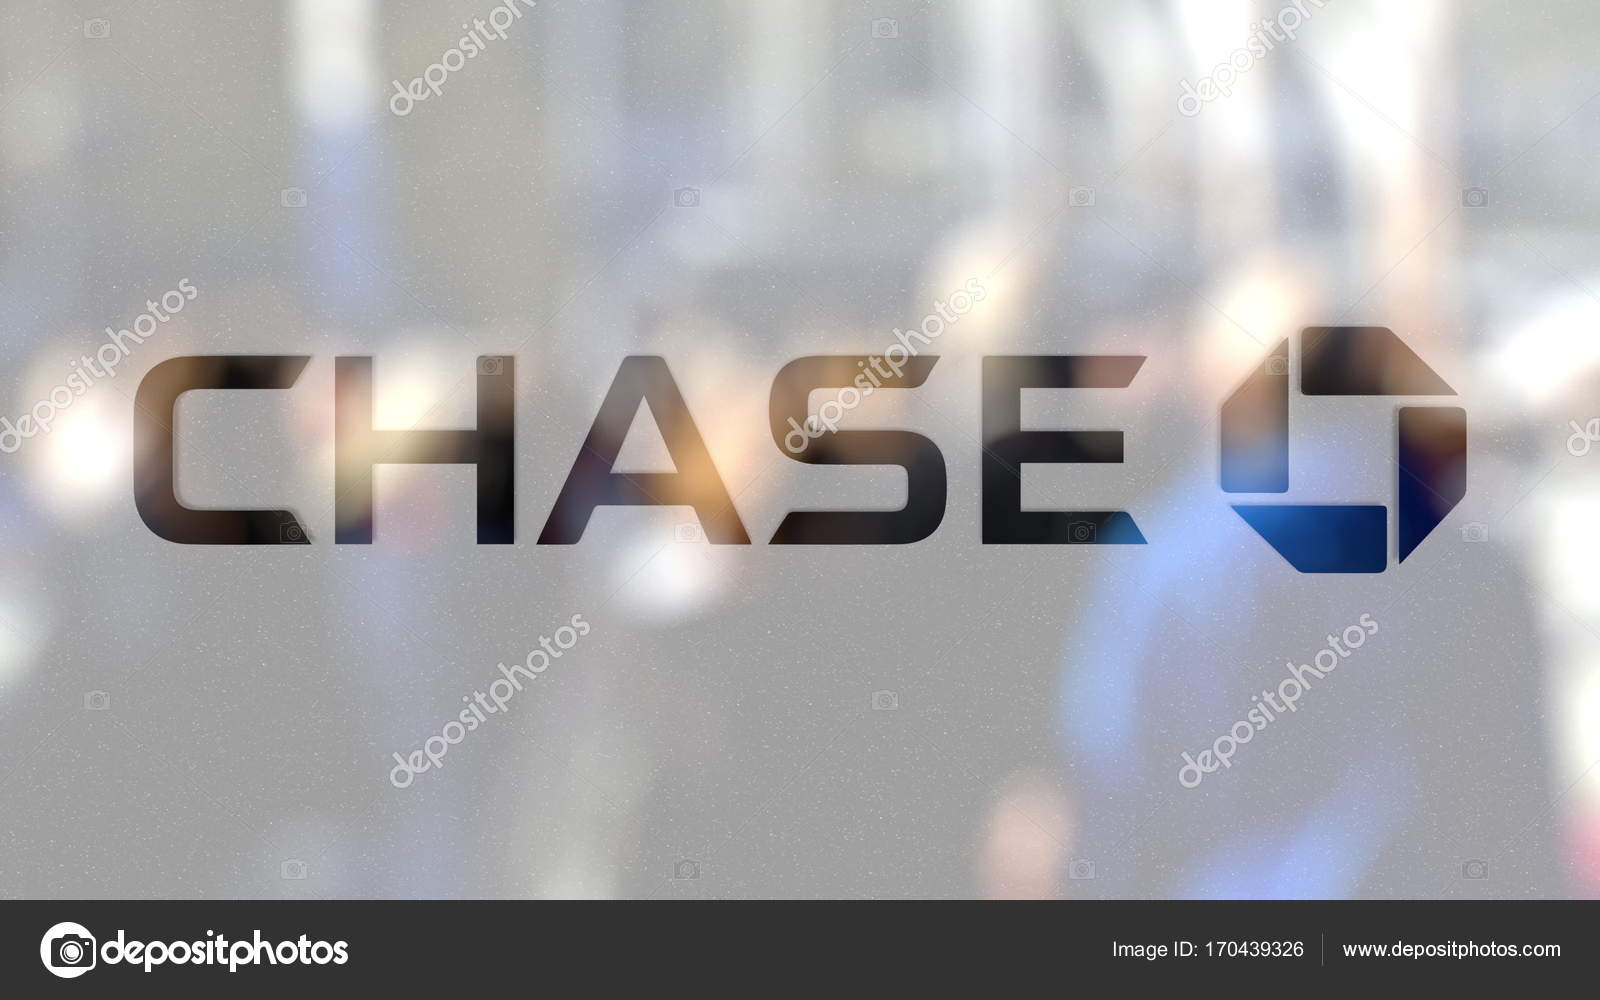 JPMorgan Chase Bank logo on a glass against blurred crowd on the